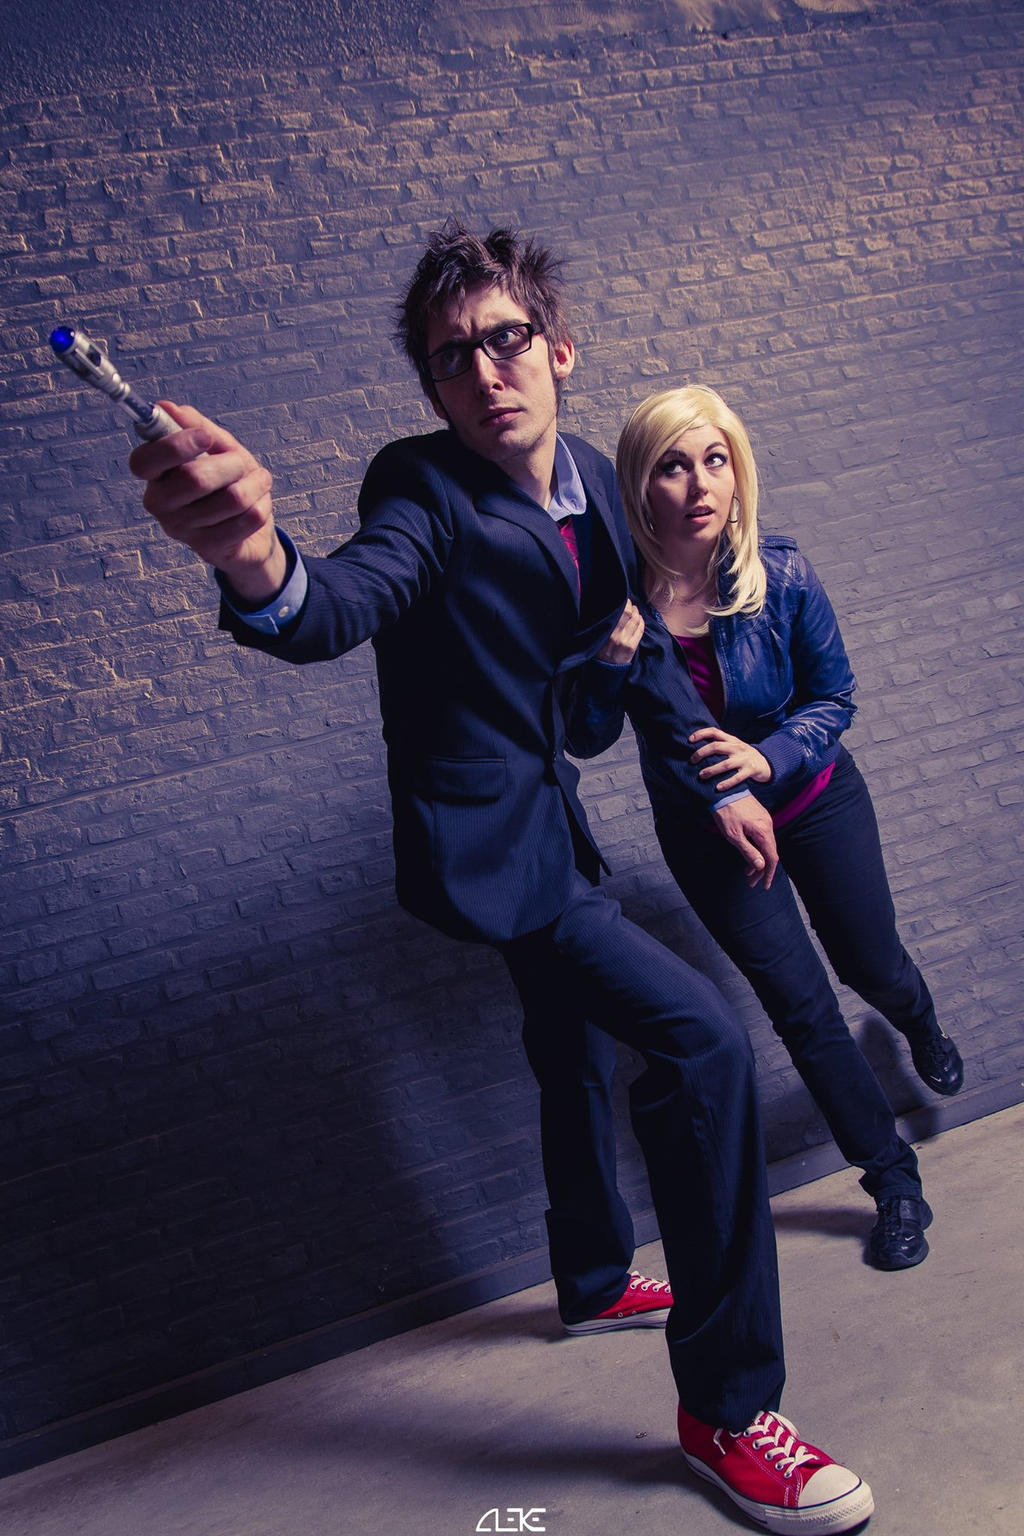 Doctor Who 10th and Rose Tyler by CynShenzi